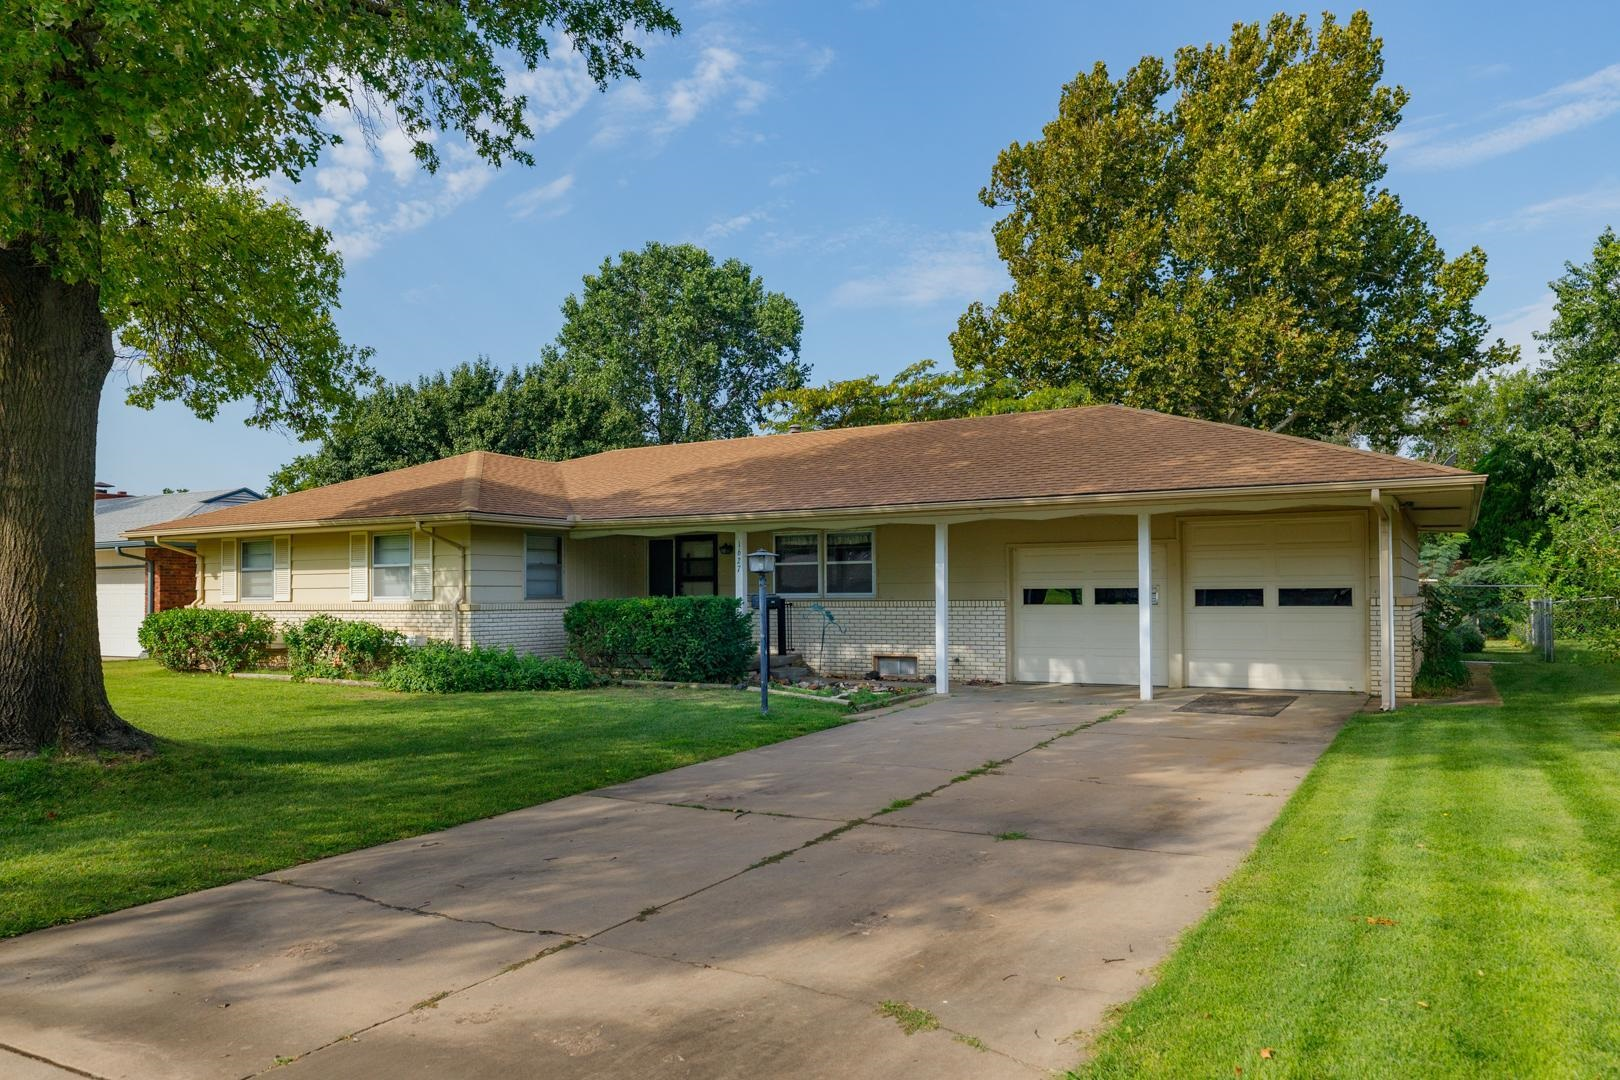 Do not miss out on this beautiful home in the highly desired Indian Hills! Beautiful mature trees in